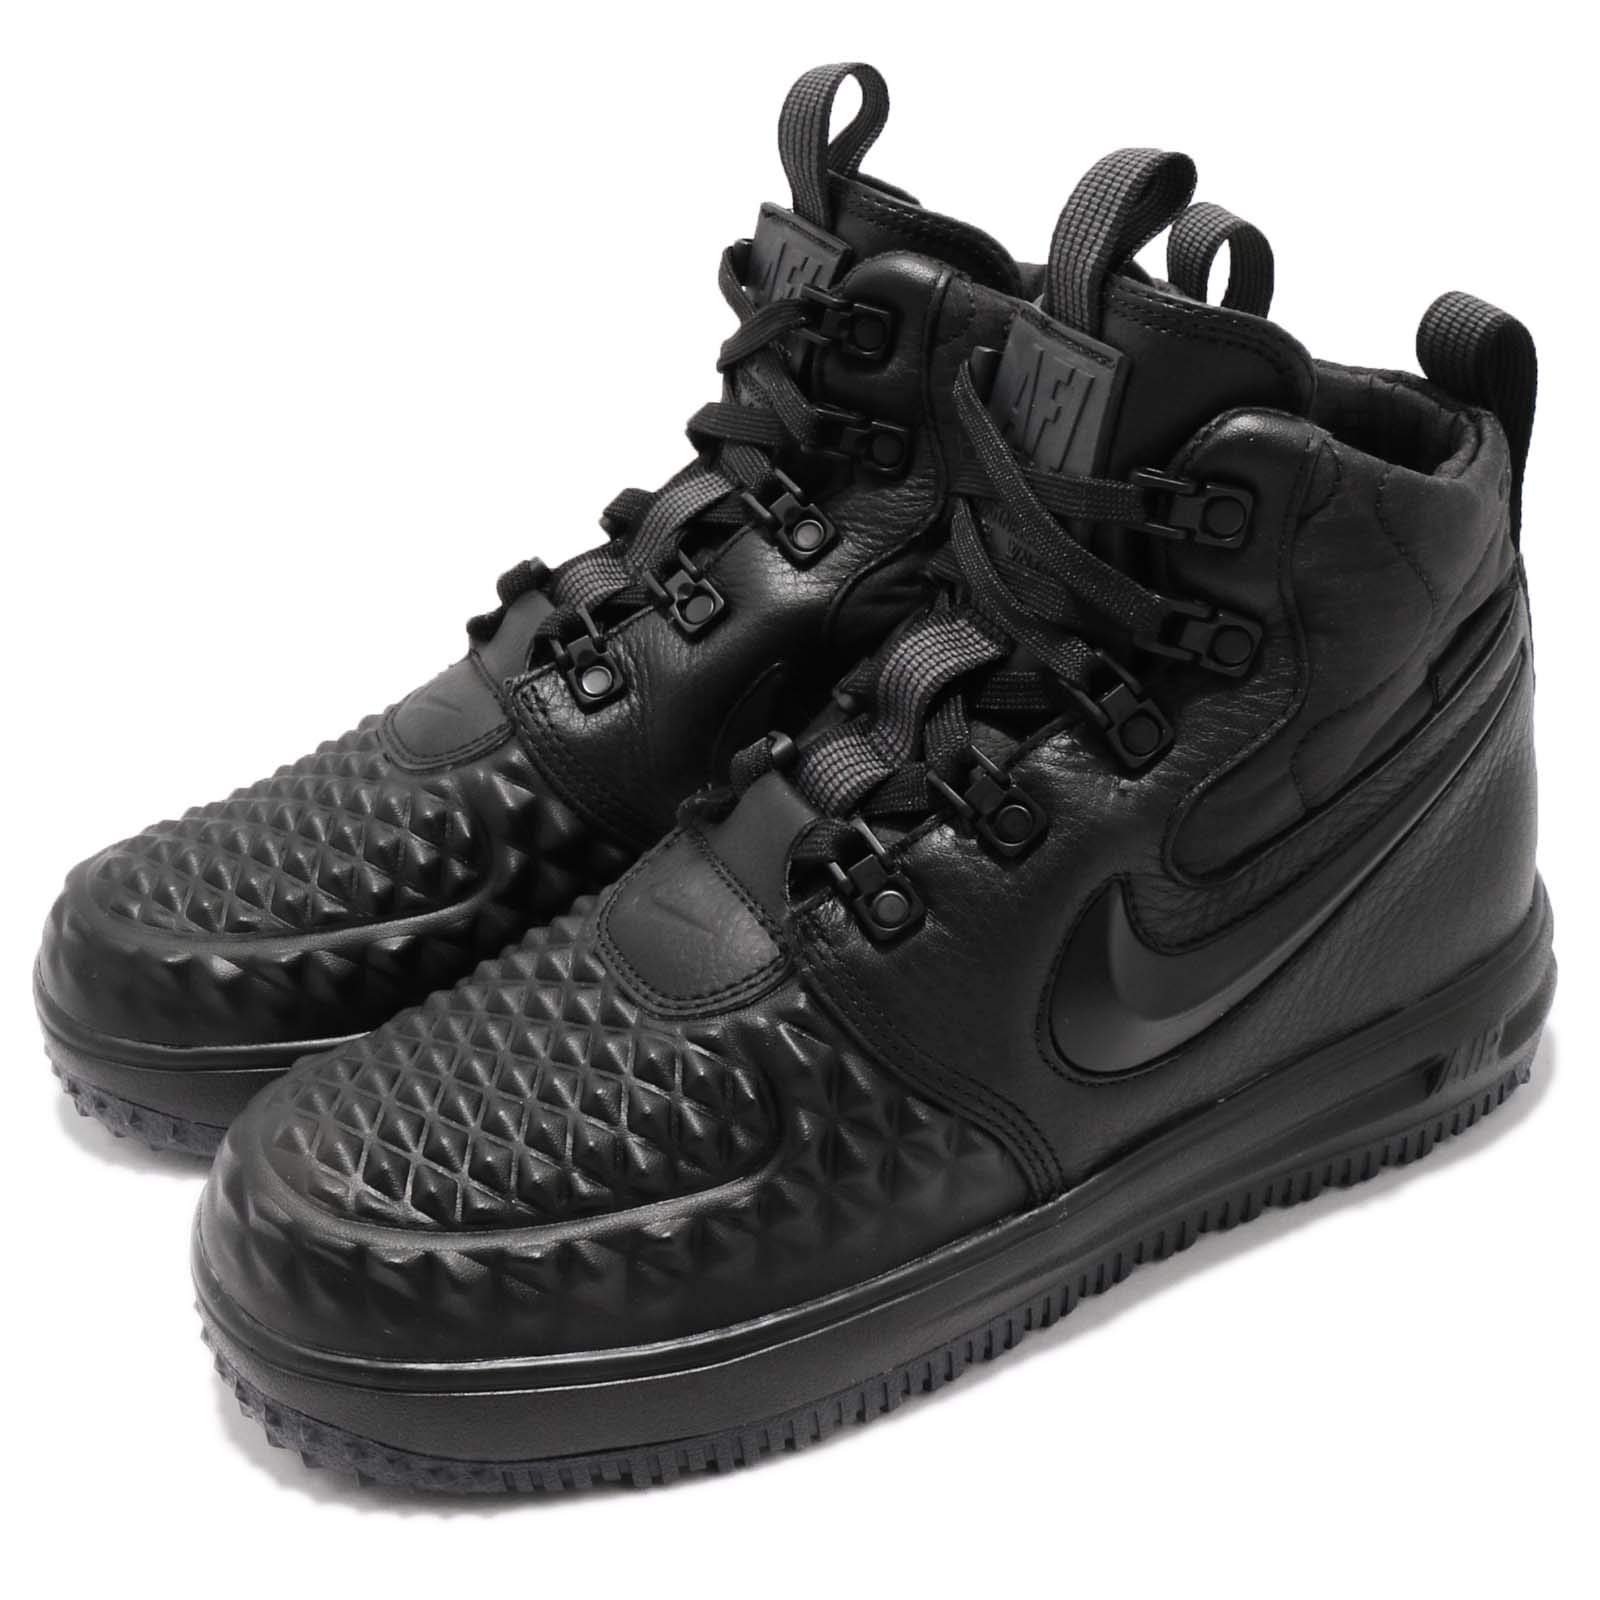 Nike Kid's LF1 Duckboot 17 GS, Black/Black-Anthracite, Youth Size 3.5 by Nike (Image #8)